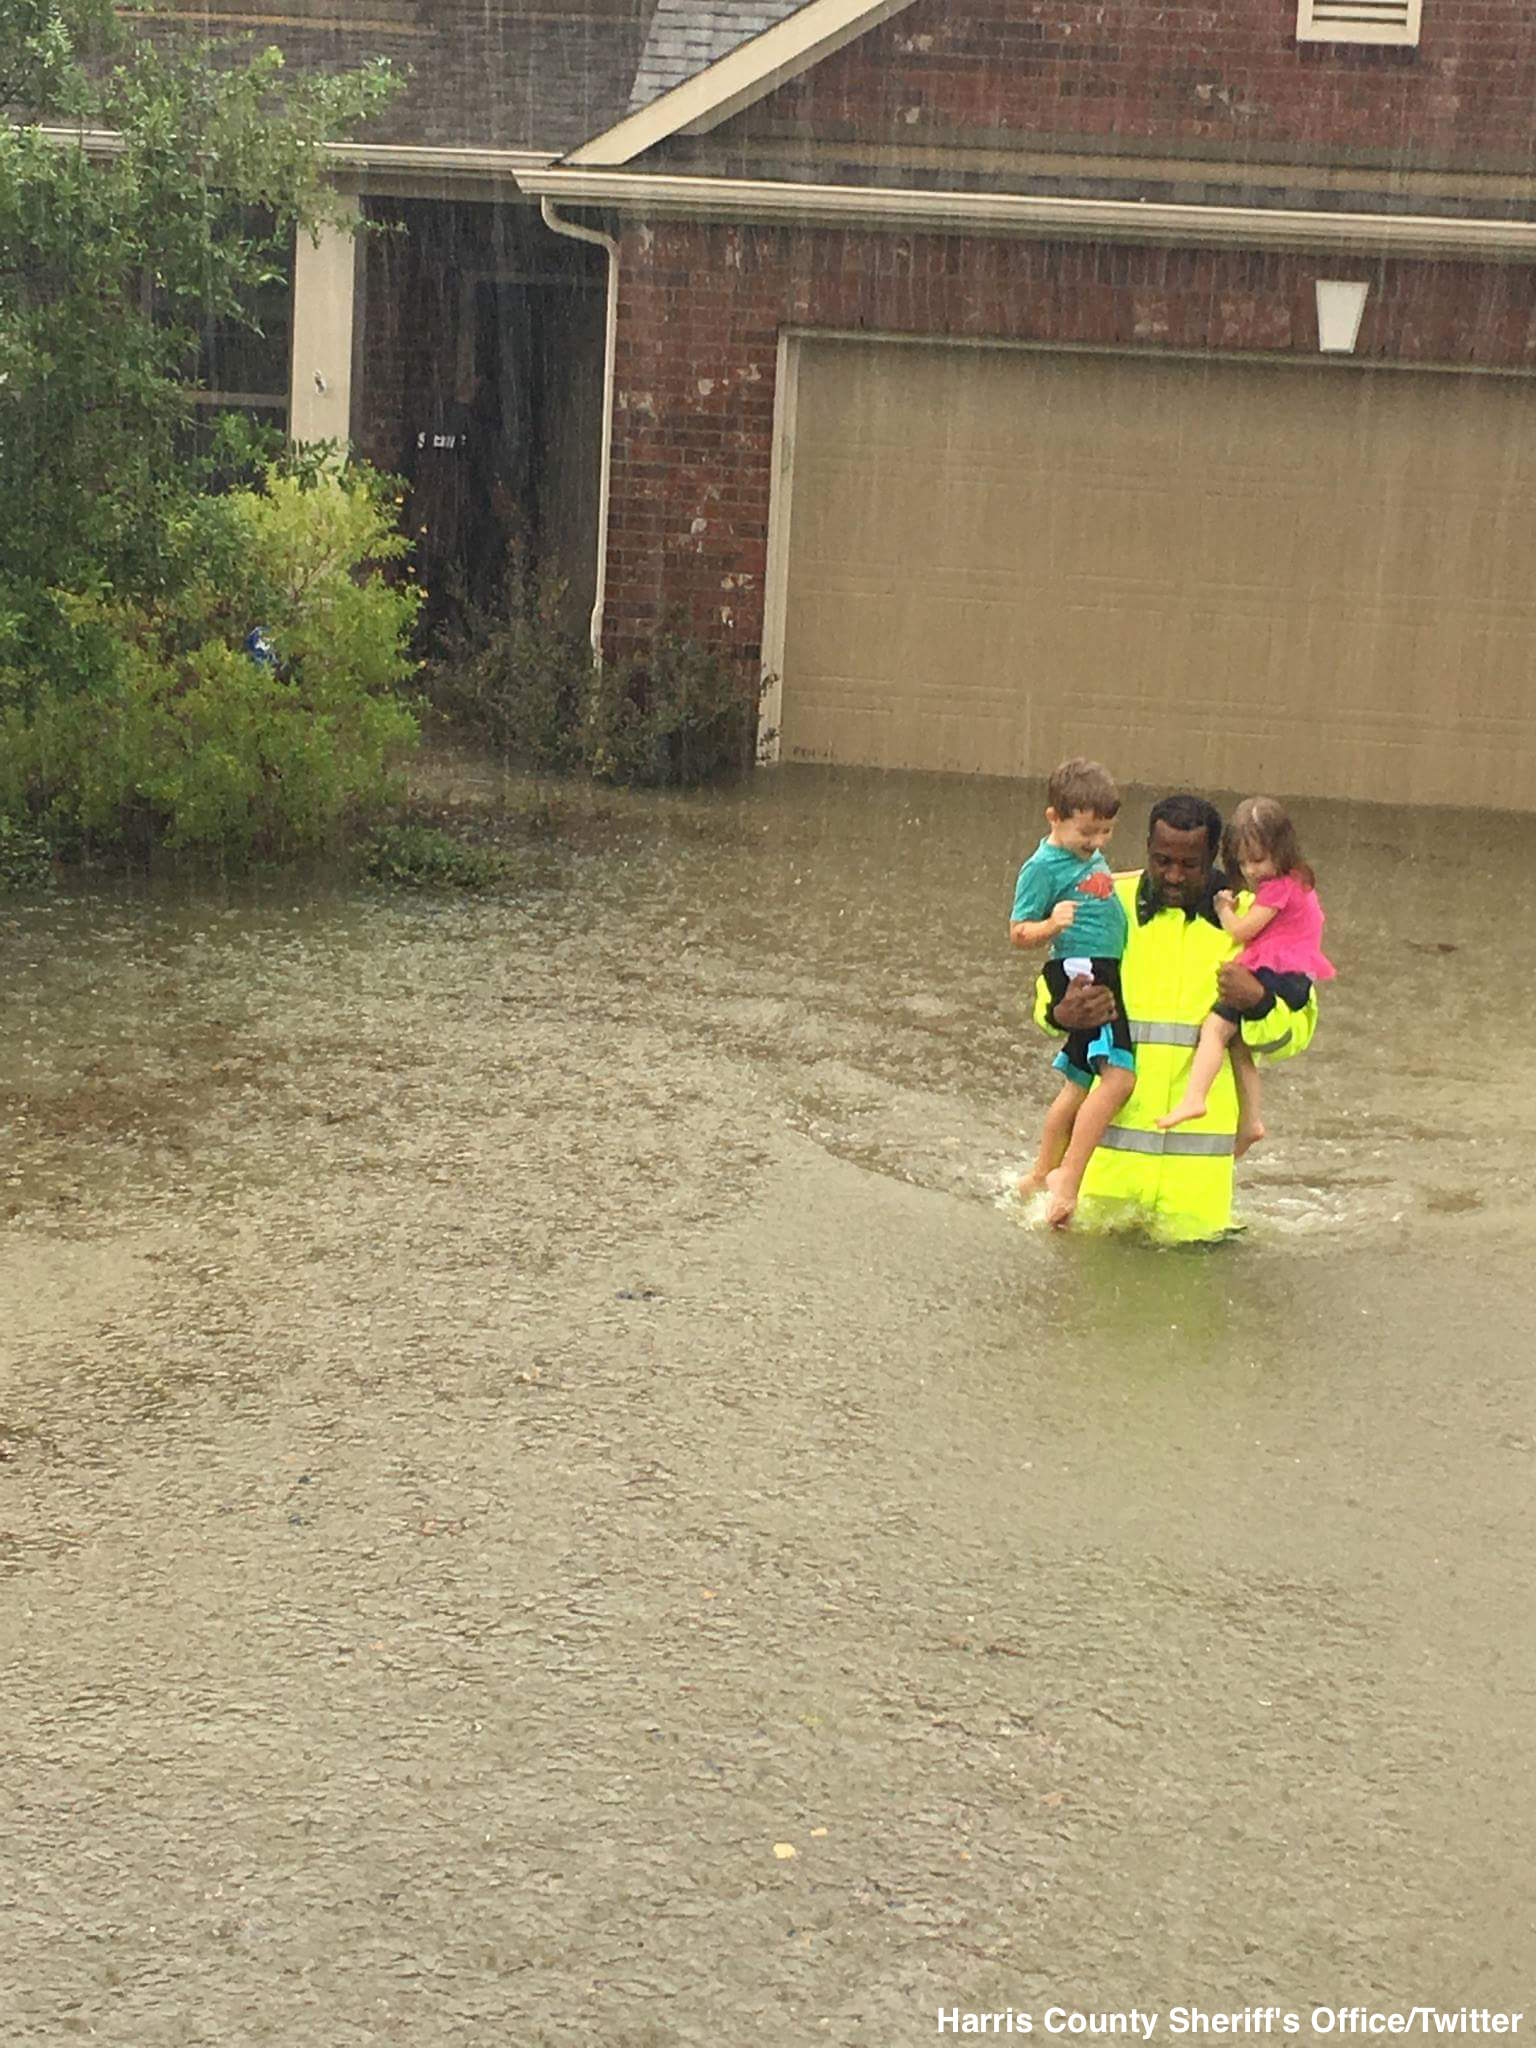 Extraordinary photo shows Harris County Sheriff's deputy rescuing two children from high floodwaters in Cypress, TX https://t.co/h0VsKSWmCI https://t.co/TXKaa9Lm1T